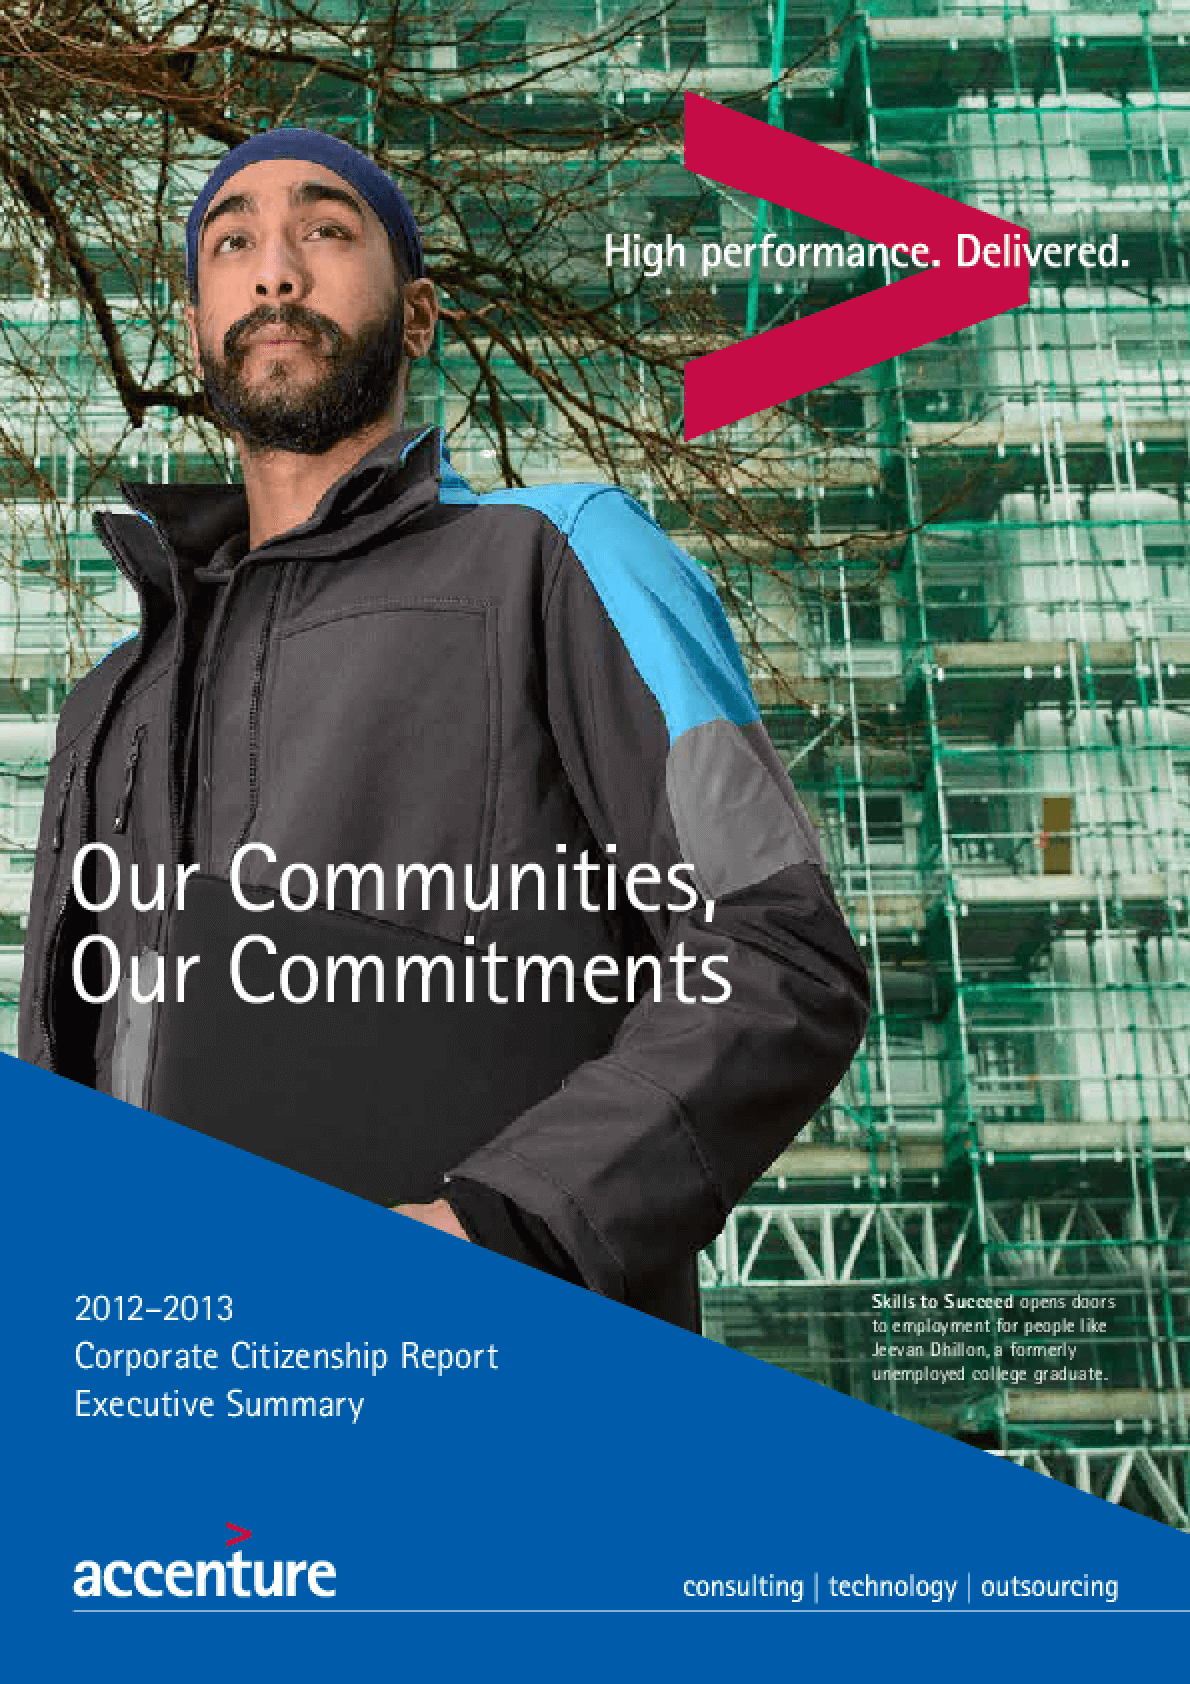 Our Communities, Our Commitments: 2012-2013 Corporate Citizenship Report (Executive Summary)